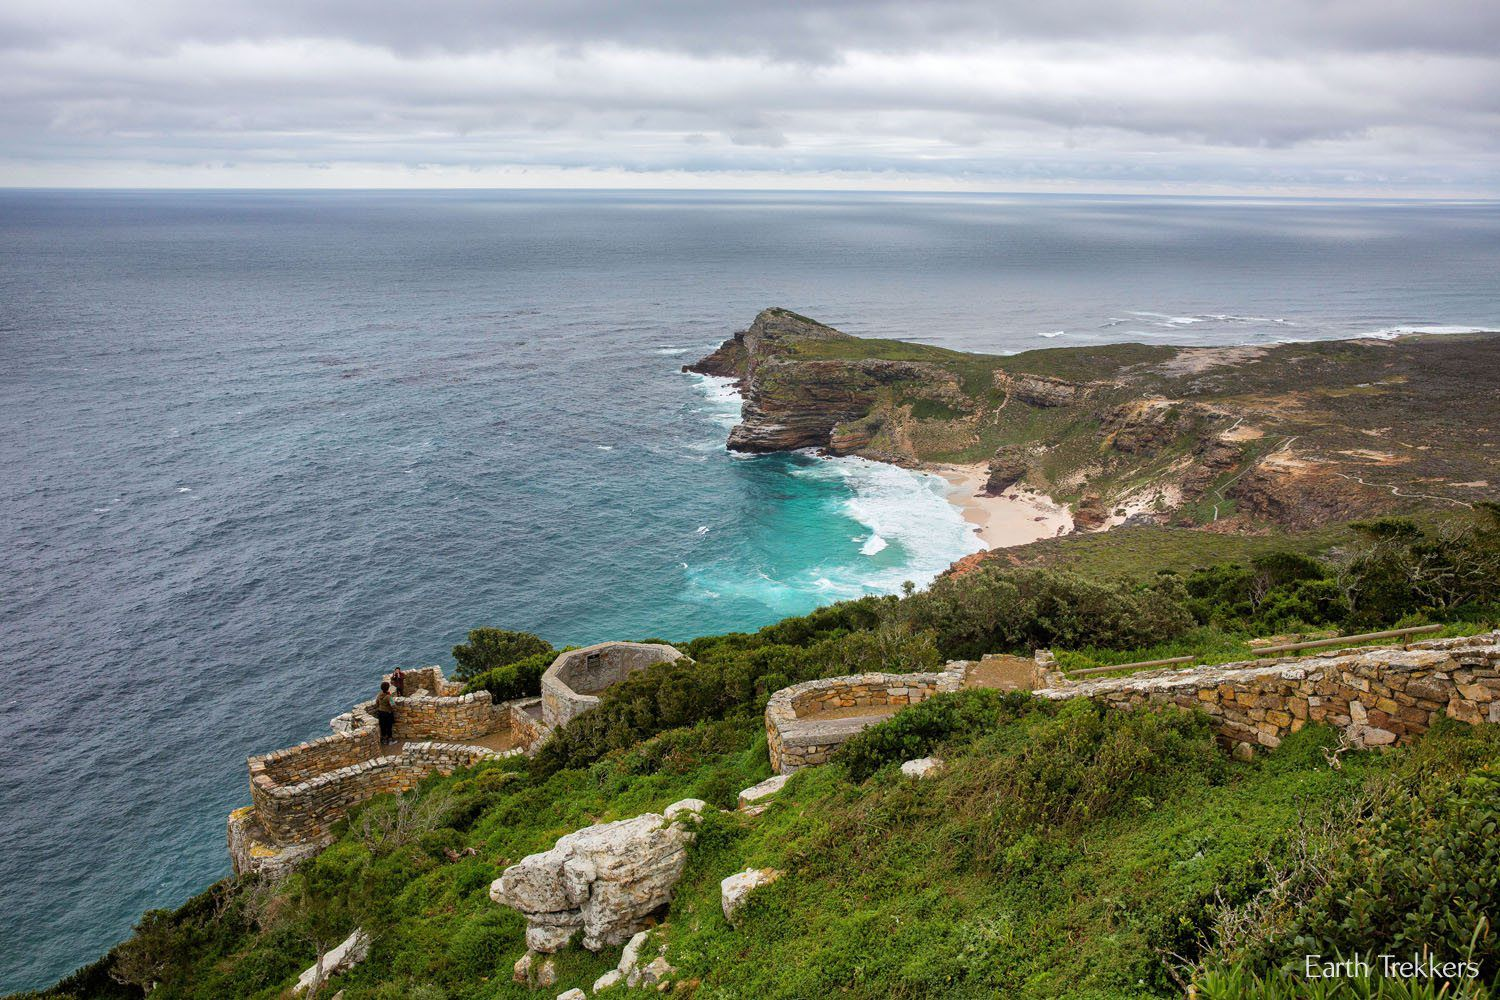 Overlooking Cape of Good Hope